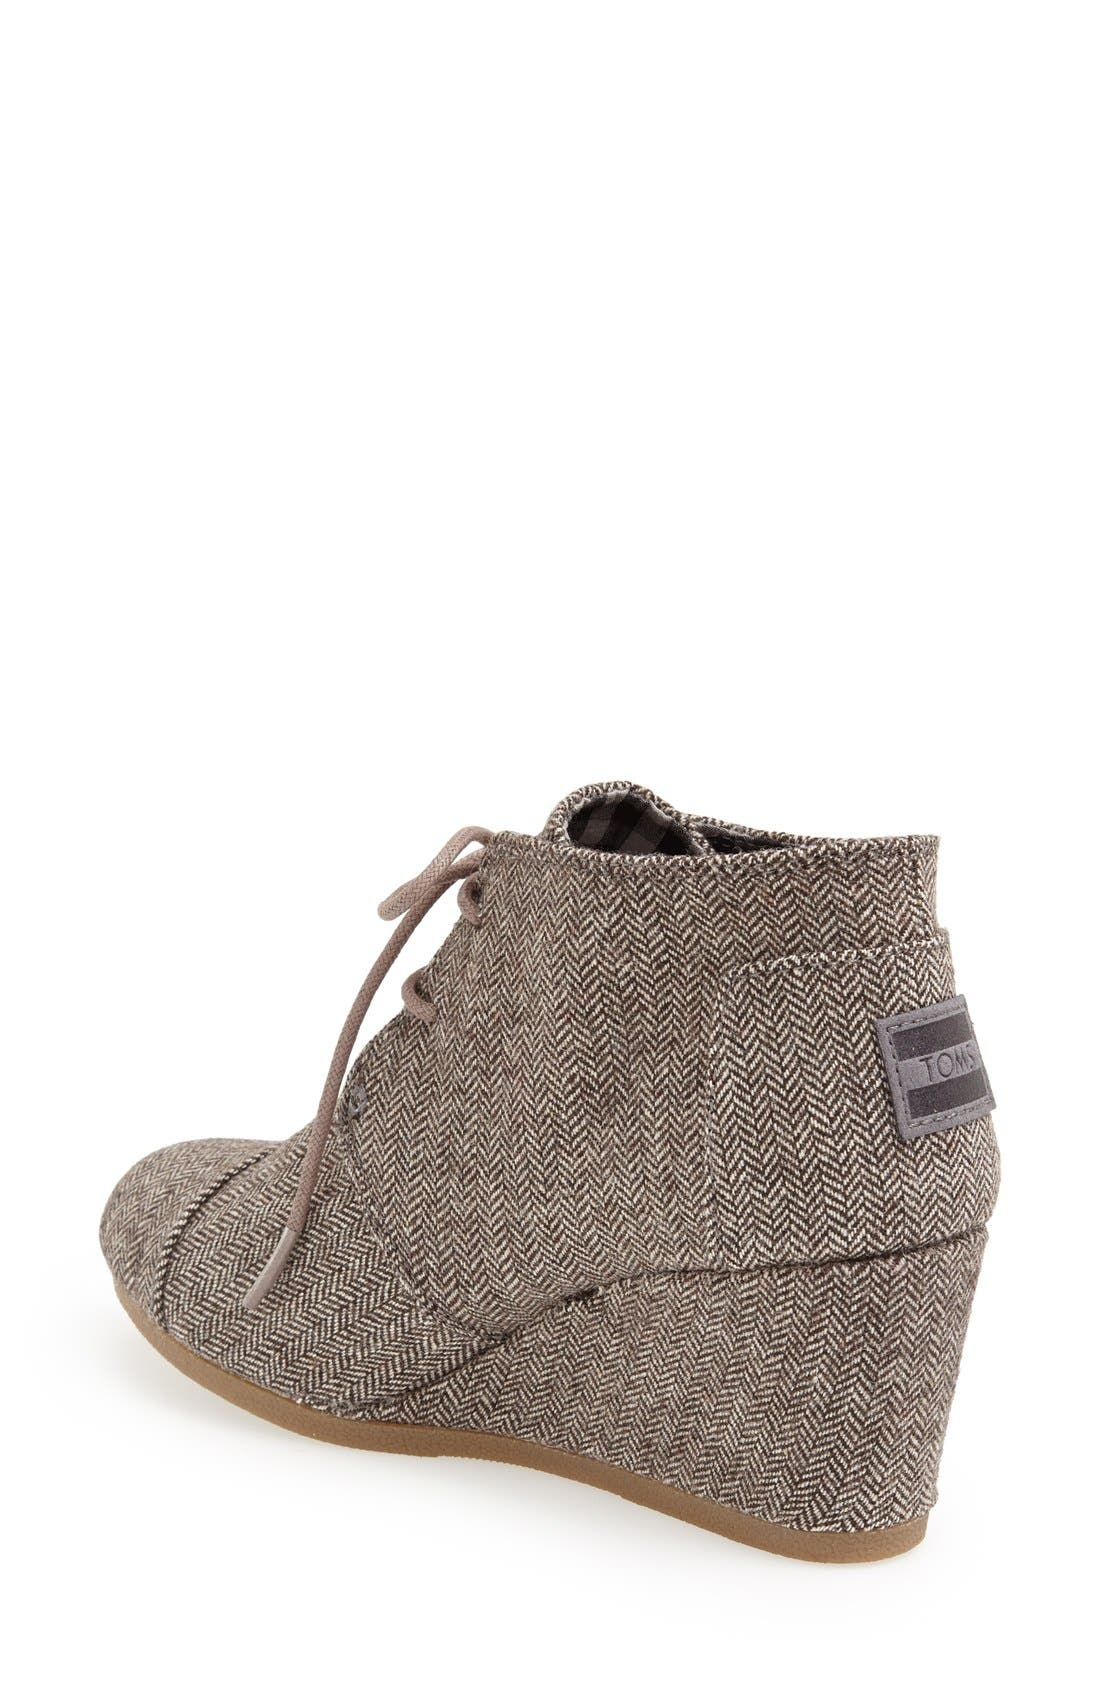 'Desert' Herringbone Wedge Bootie,                             Alternate thumbnail 2, color,                             Grey